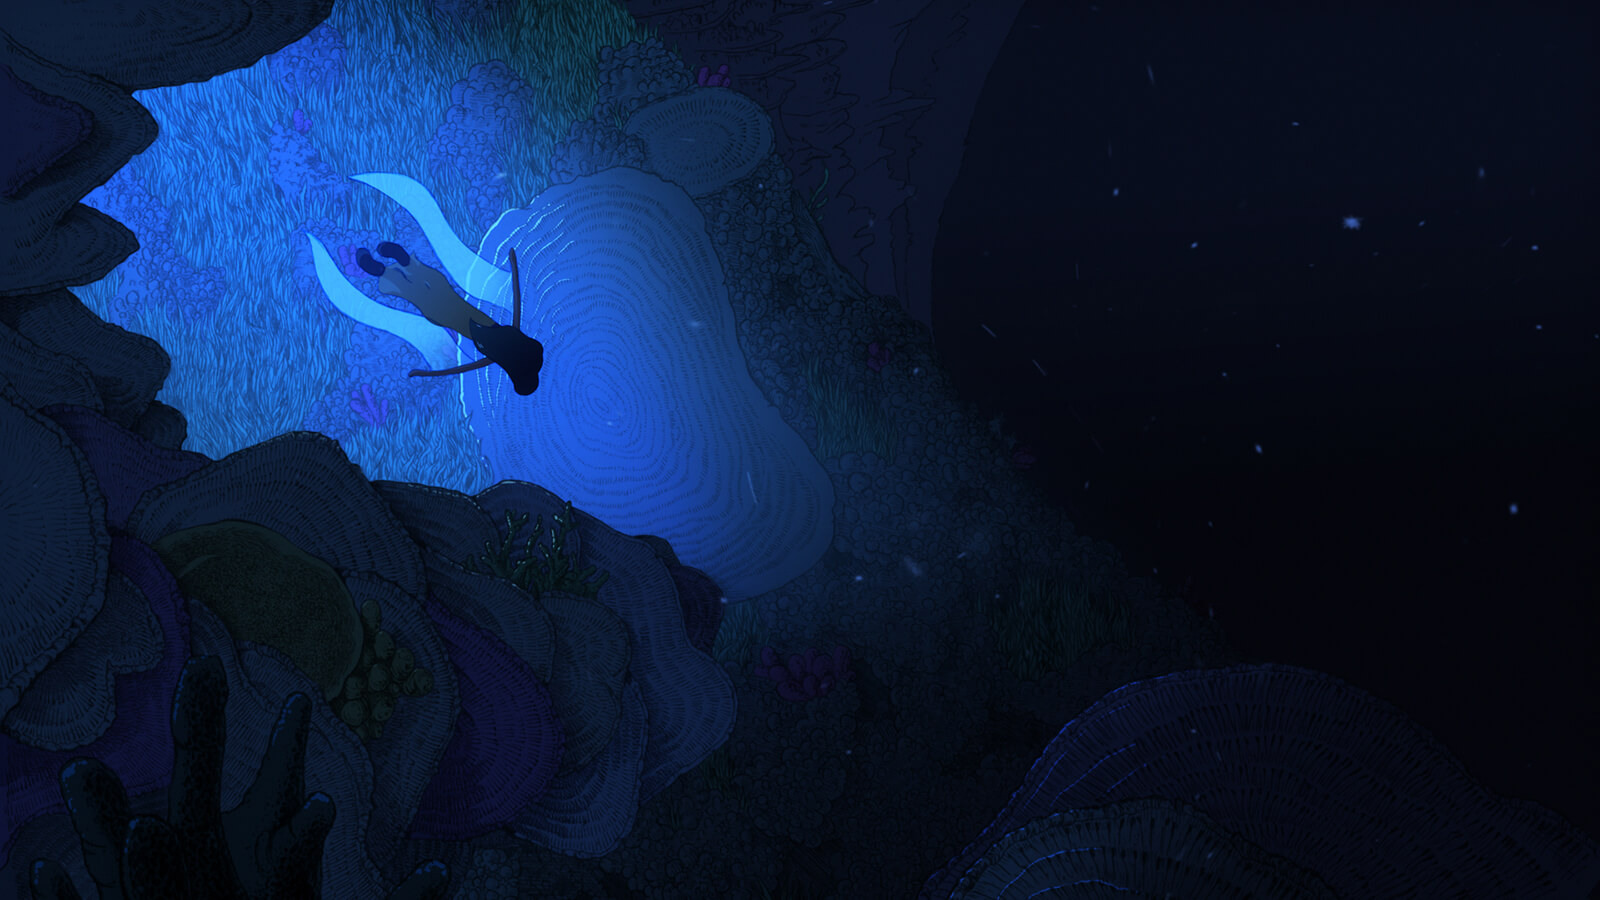 A girl swims underwater deep into a dark area surrounded by faintly visible corals and seaweed